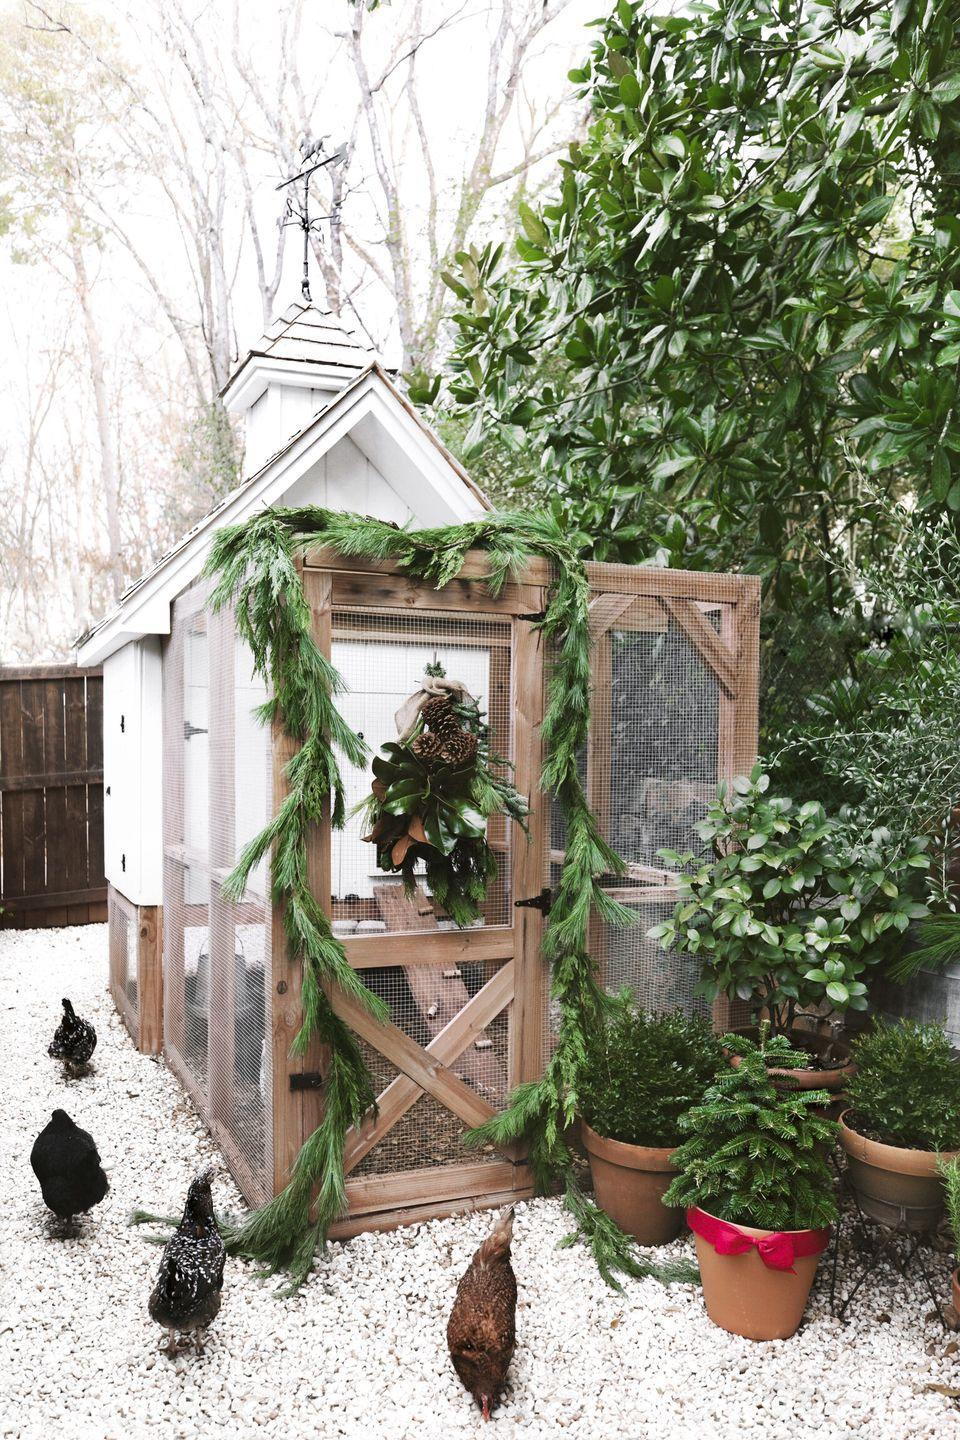 """<p>Don't forget your feathered friends when decorating your windows (and doors!). Here a simple fir garland flanks the door, while a magnolia leaf wreath graces the window. </p><p><a class=""""link rapid-noclick-resp"""" href=""""https://www.amazon.com/artificial-Magnolia-leaves-pack-30/dp/B074CSY3PF/?tag=syn-yahoo-20&ascsubtag=%5Bartid%7C10050.g.23343056%5Bsrc%7Cyahoo-us"""" rel=""""nofollow noopener"""" target=""""_blank"""" data-ylk=""""slk:SHOP MAGNOLIA LEAVES"""">SHOP MAGNOLIA LEAVES</a></p>"""